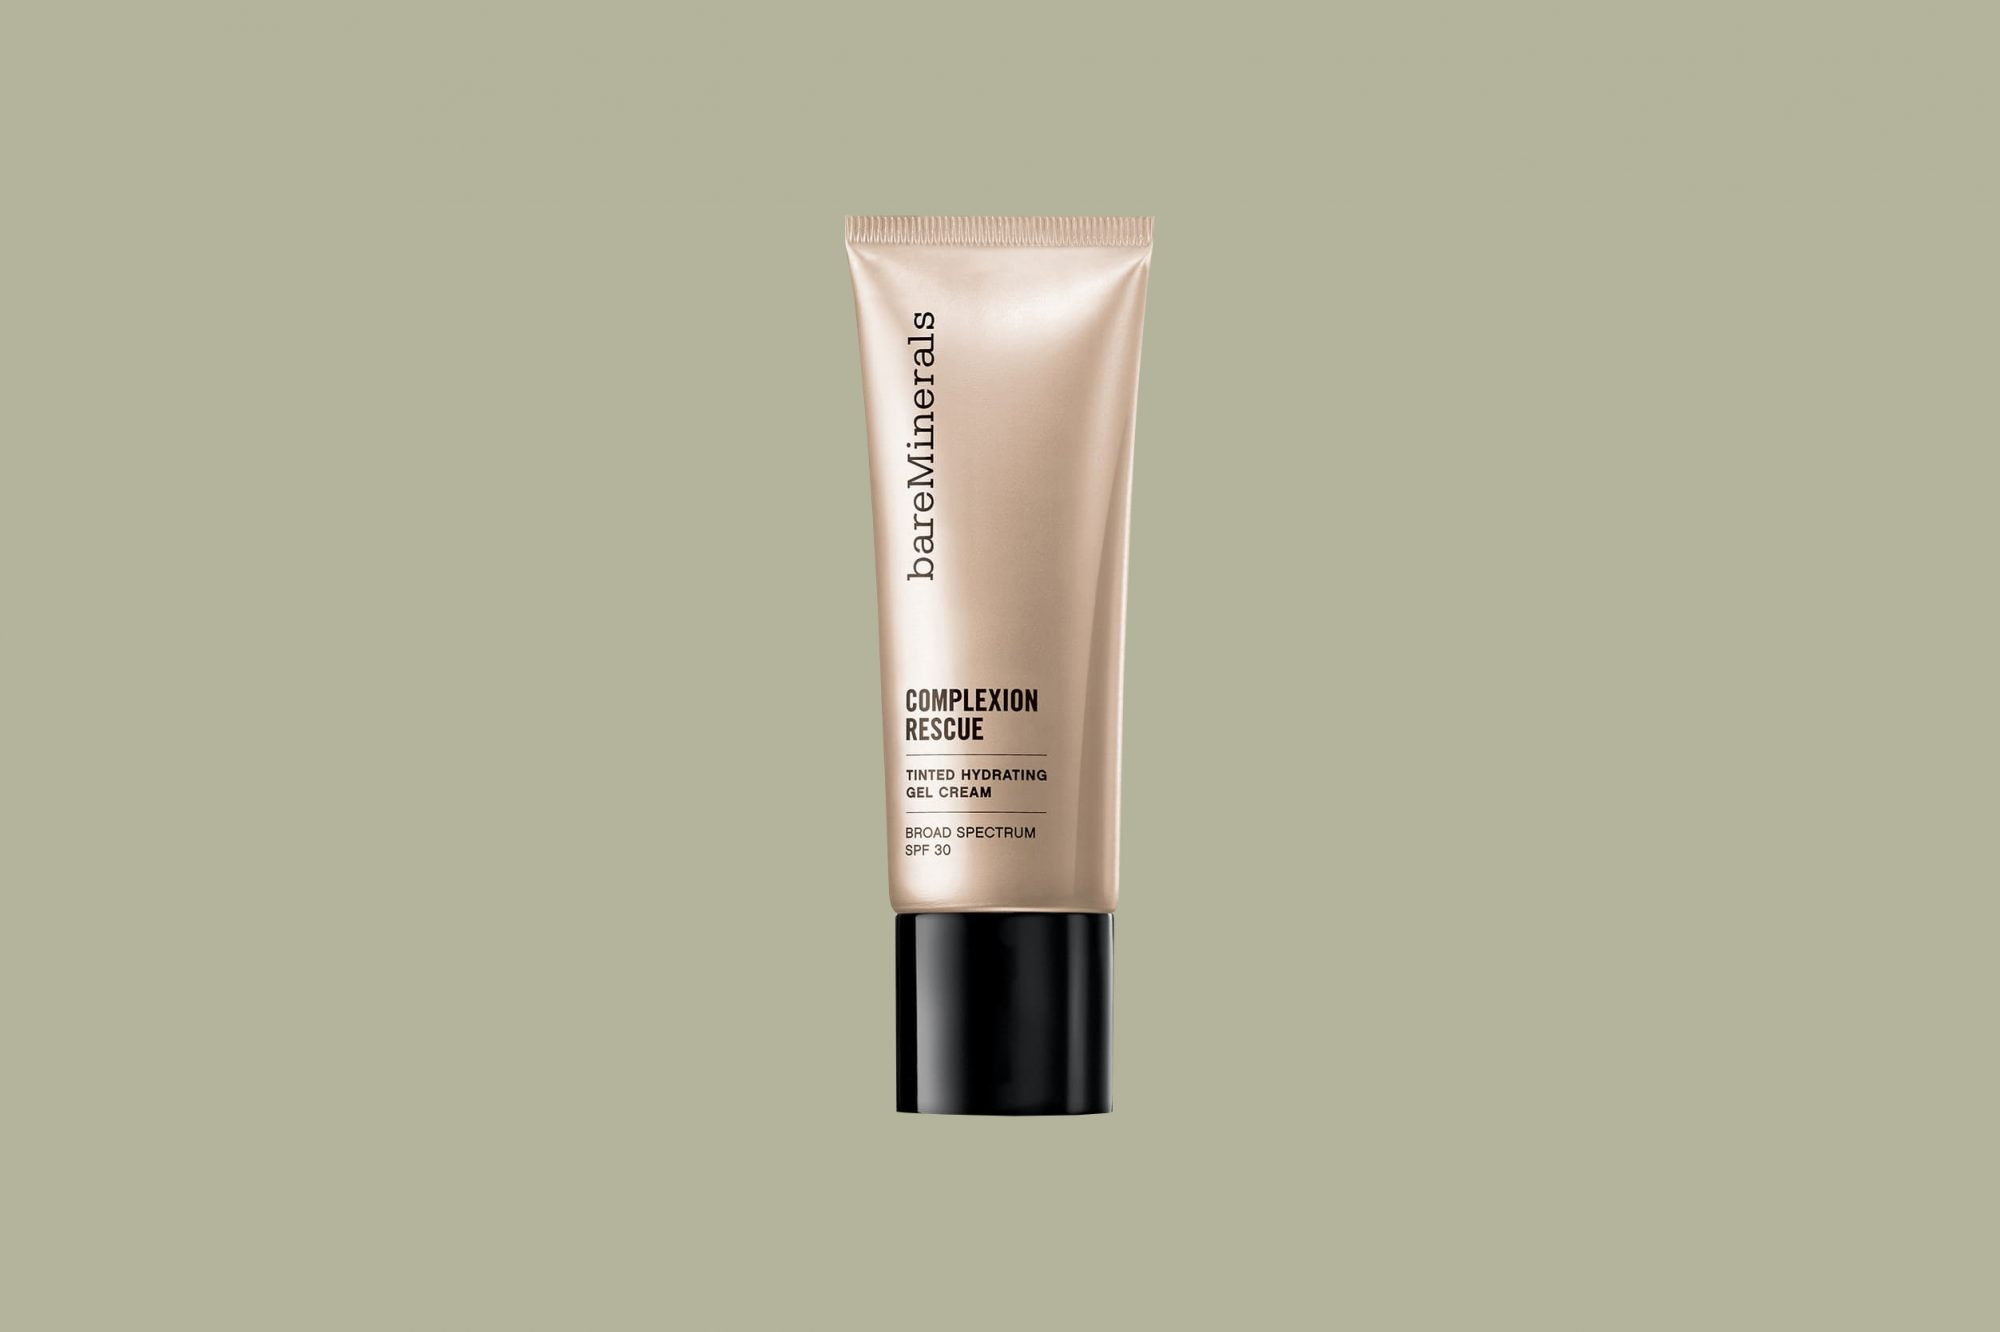 bareMinerals Complexion Rescue Tinted Hydrating Gel Cream Broad Spectrum SPF